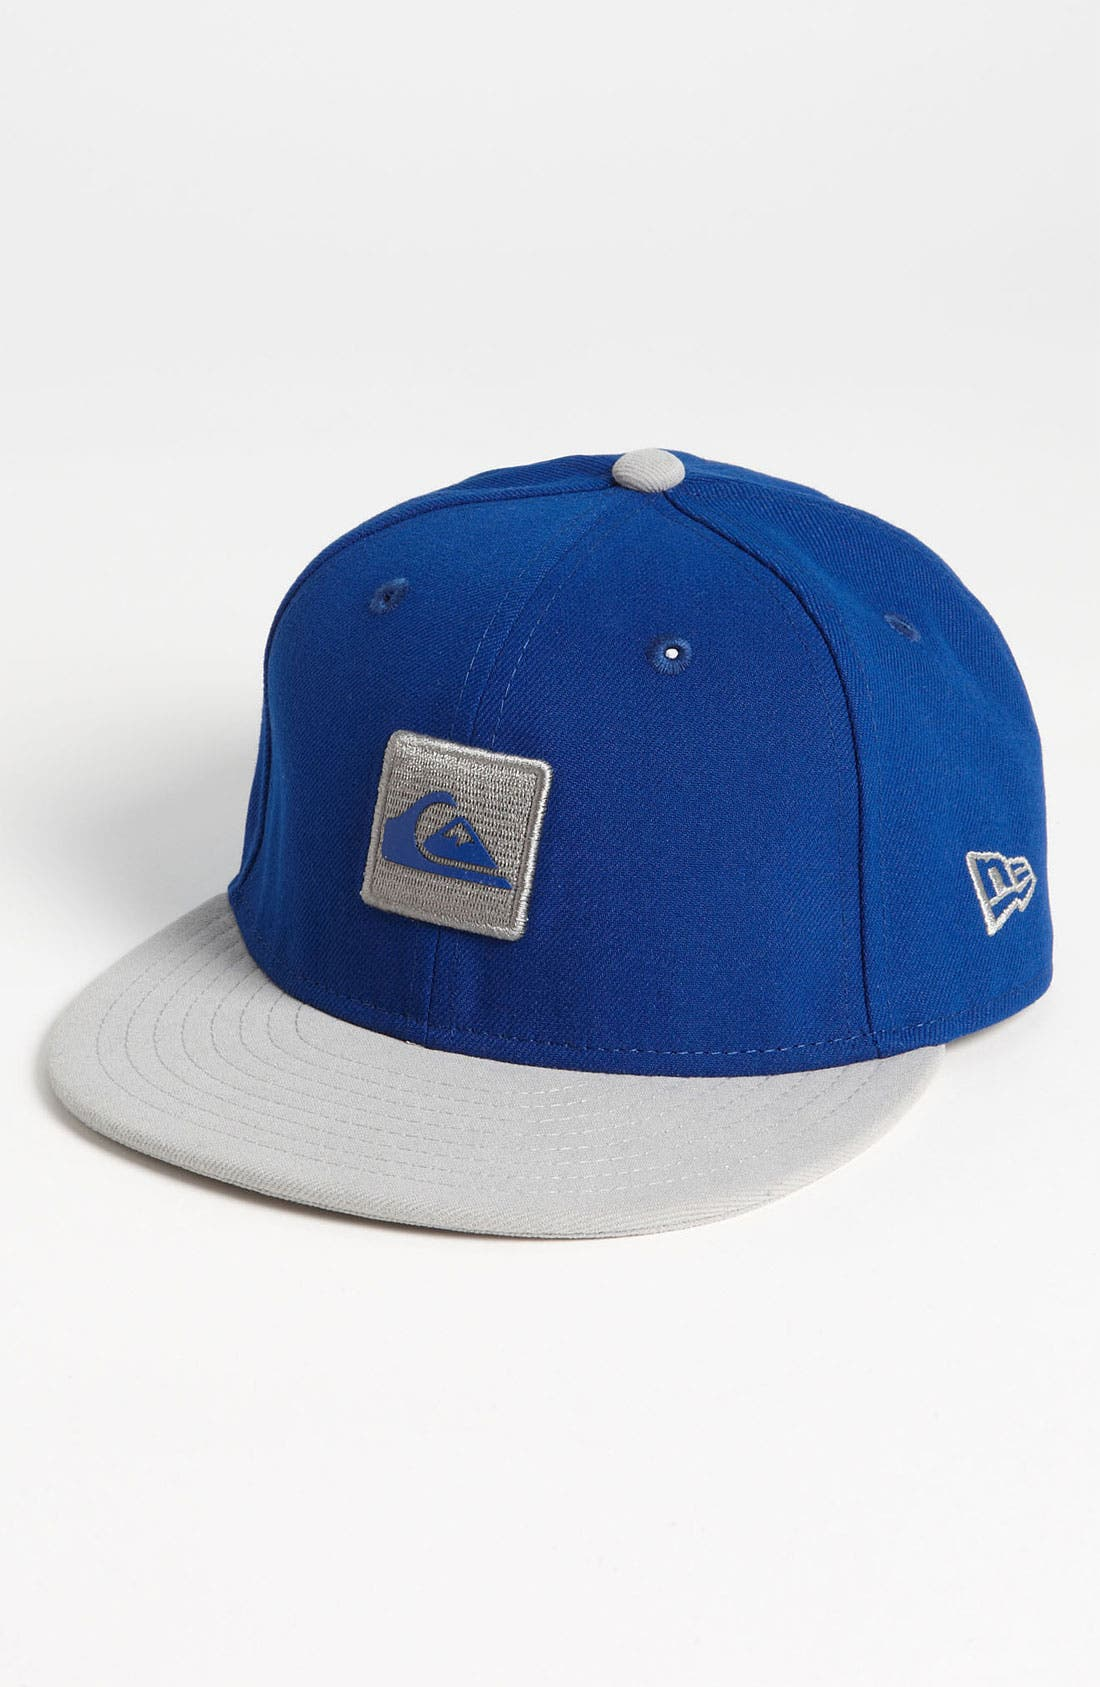 'Slug' Baseball Cap,                             Main thumbnail 1, color,                             Blue Velvet